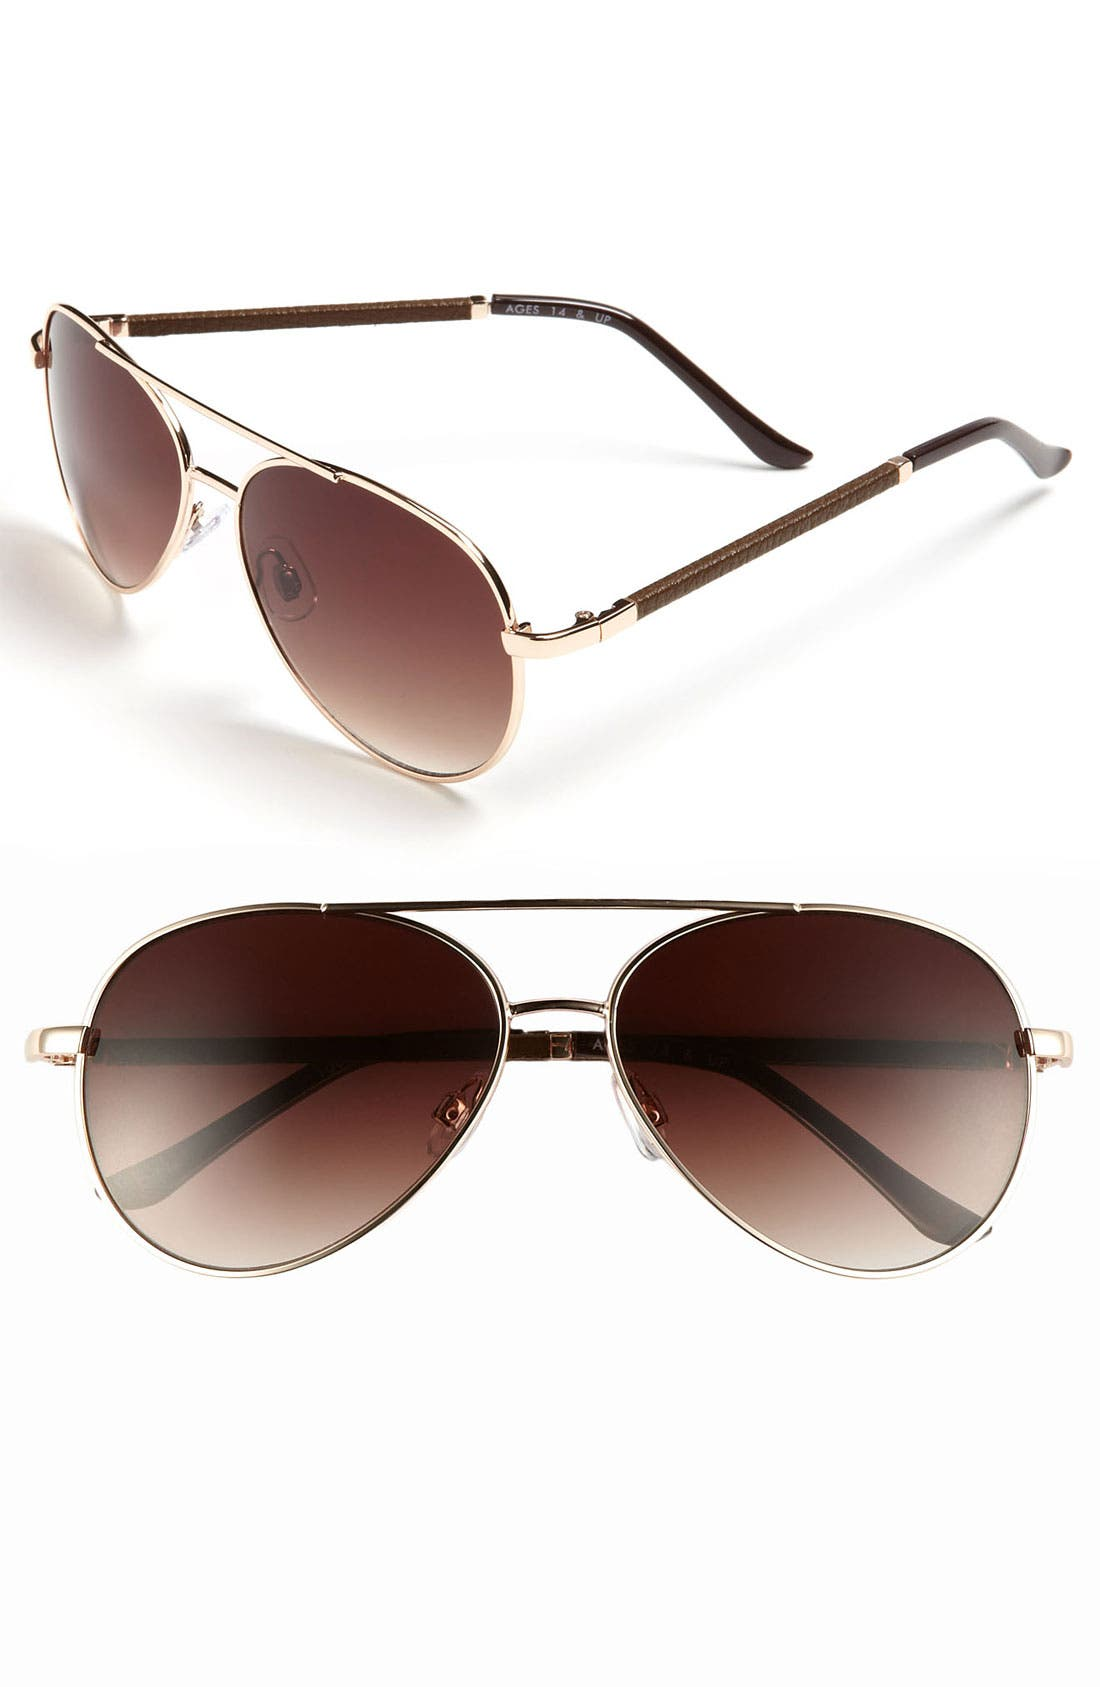 Main Image - FE NY 56mm Aviator Sunglasses